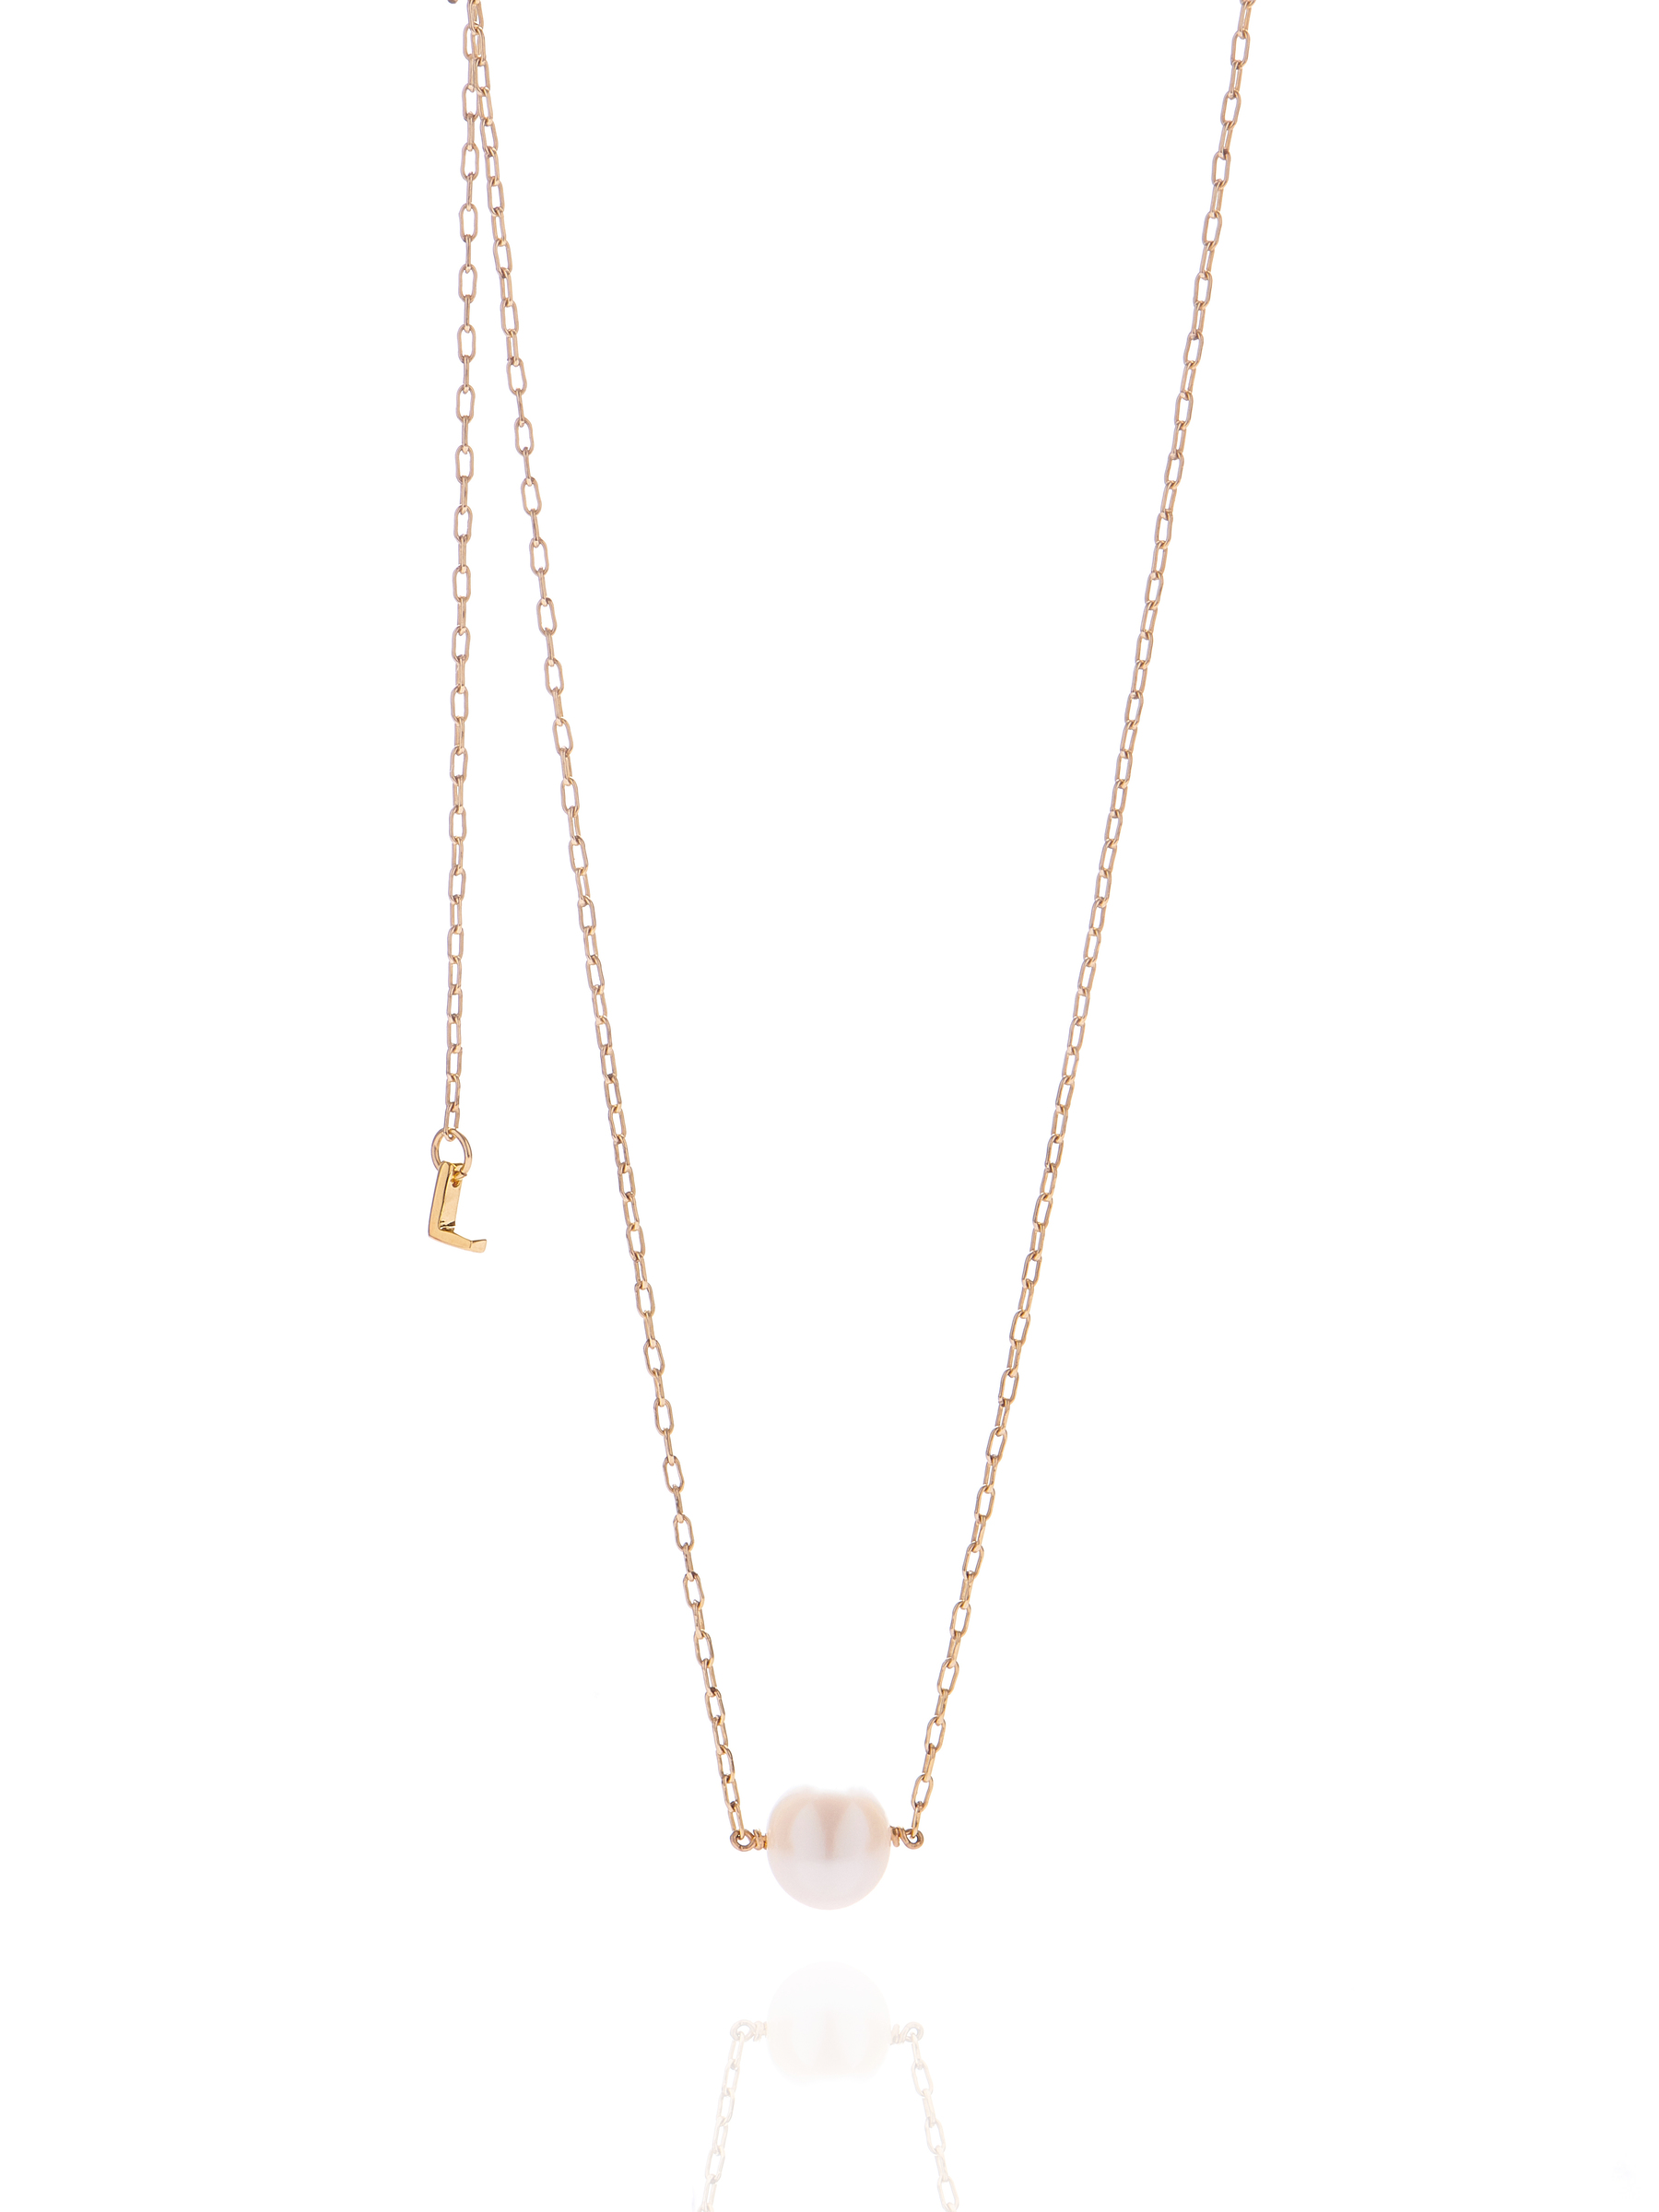 One Pearl Necklace.jpg